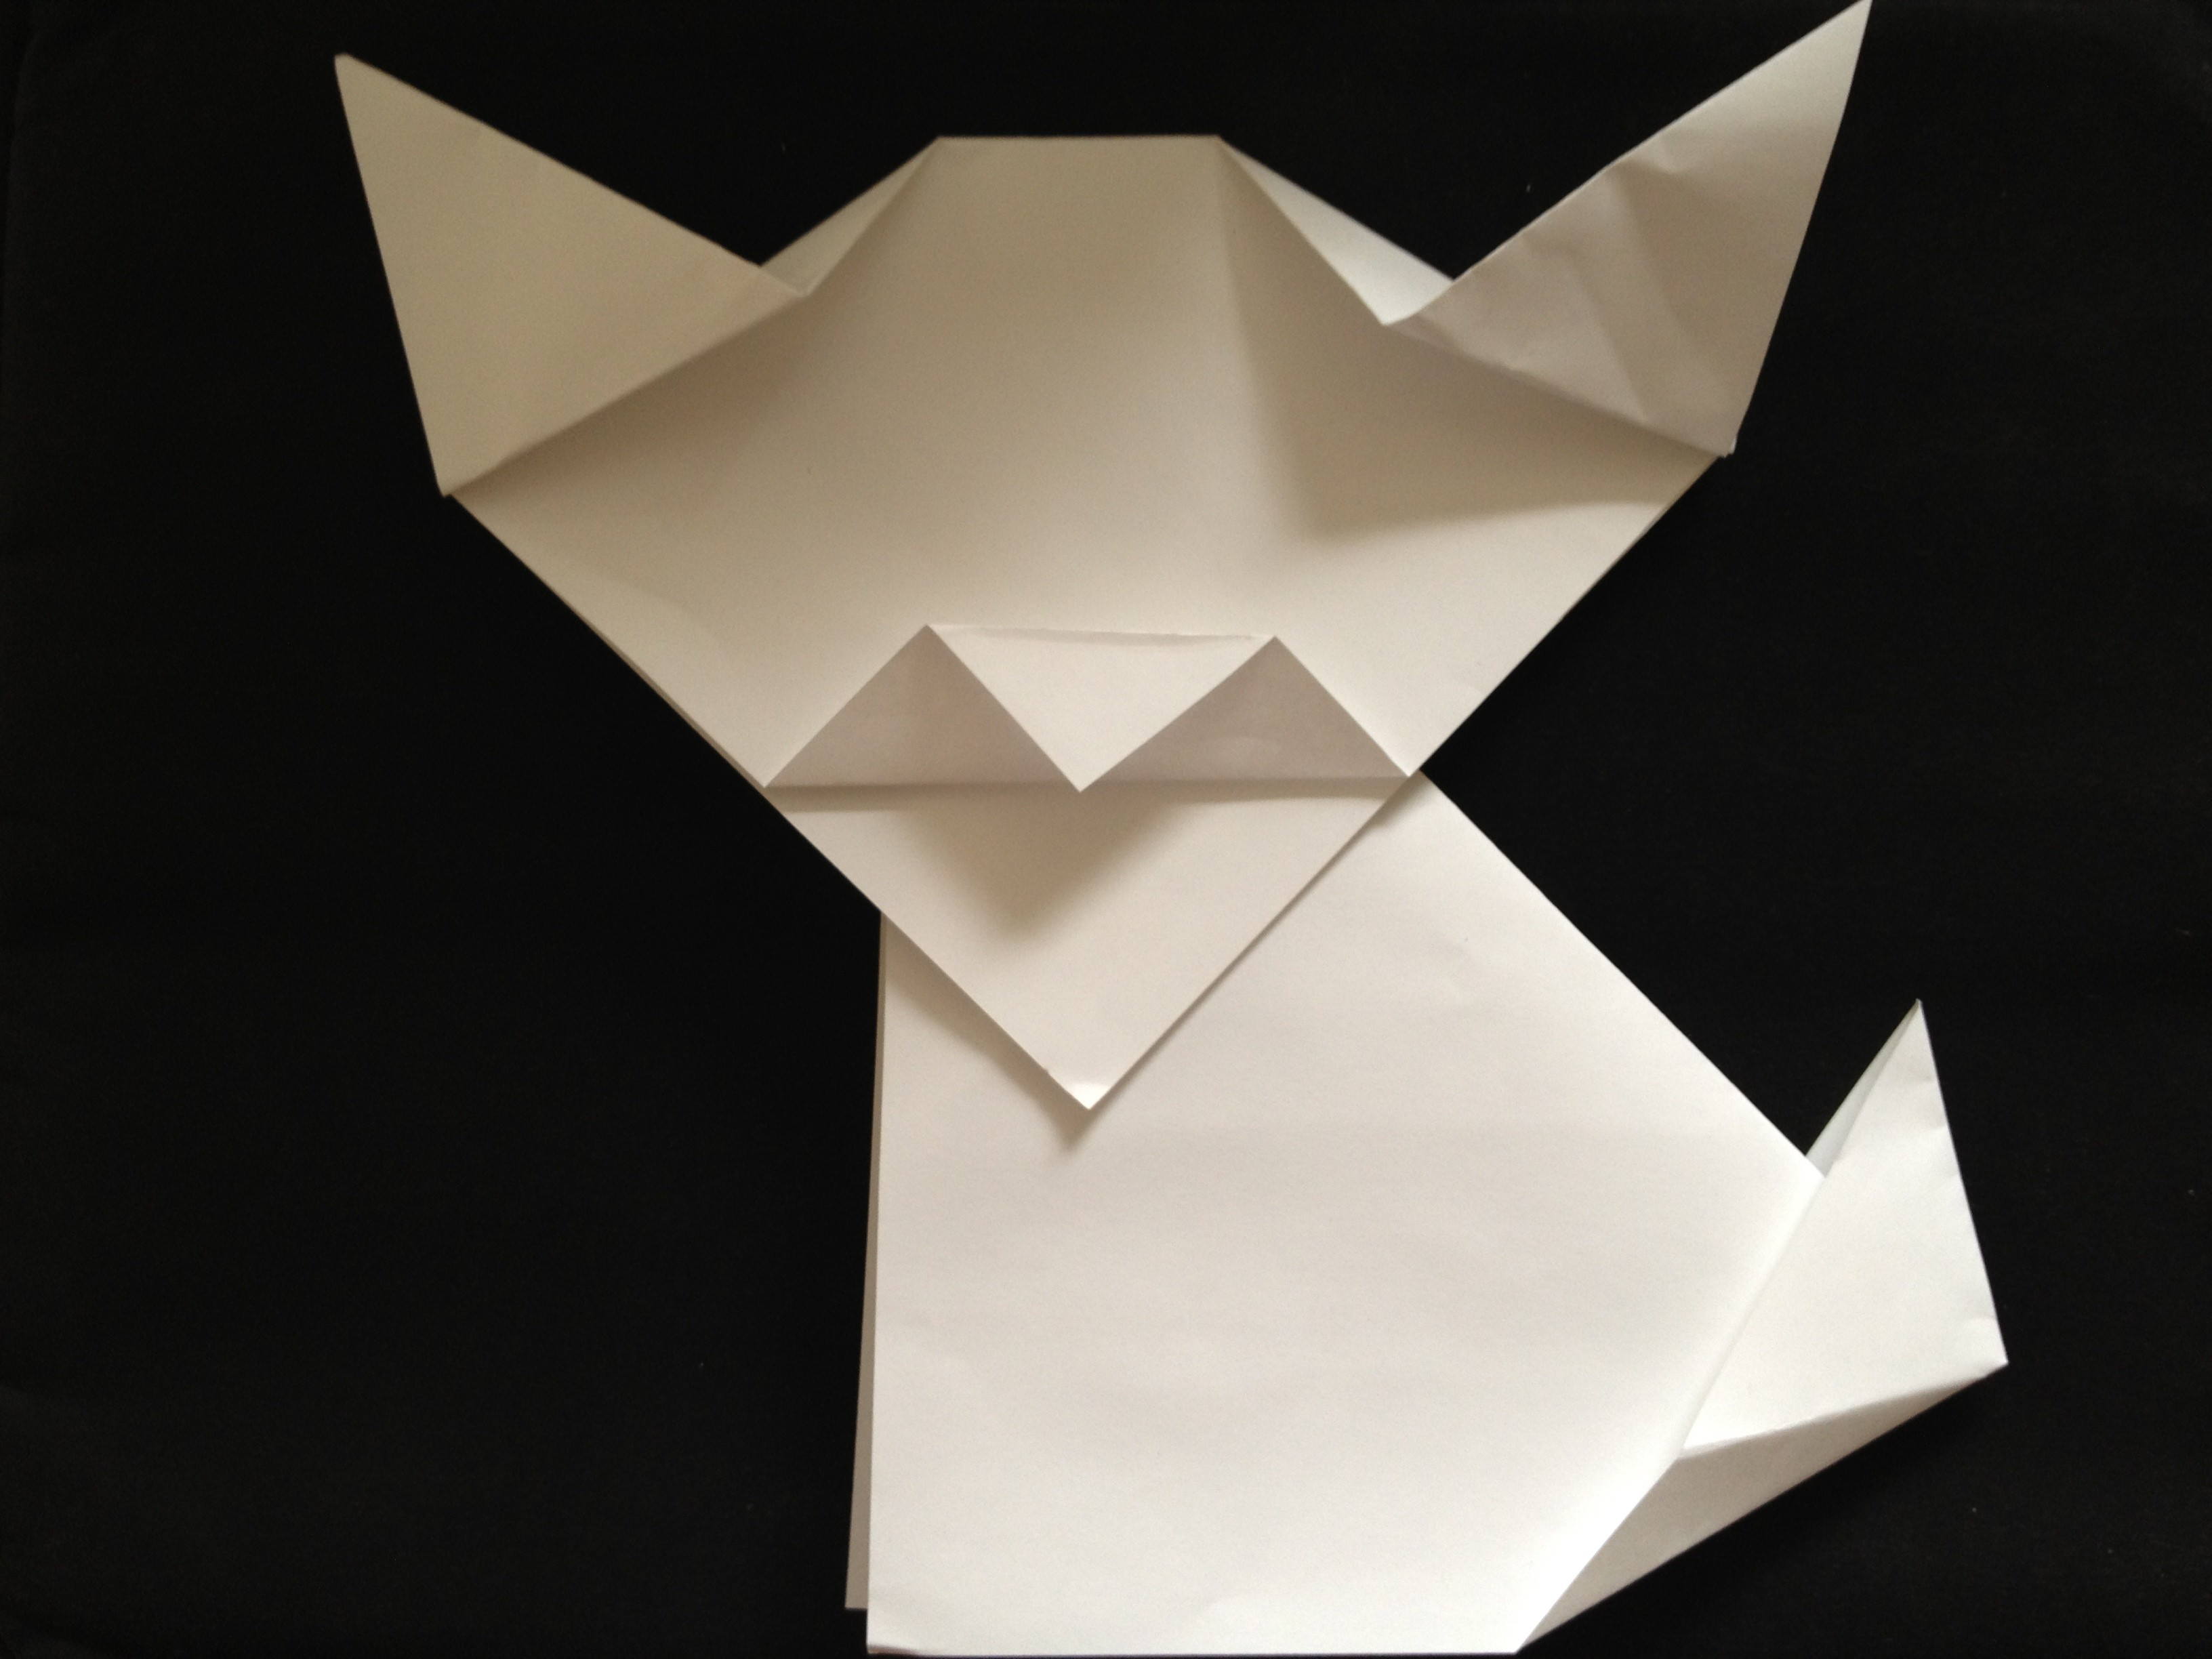 Directions to Fold an Origami Dog or Cat